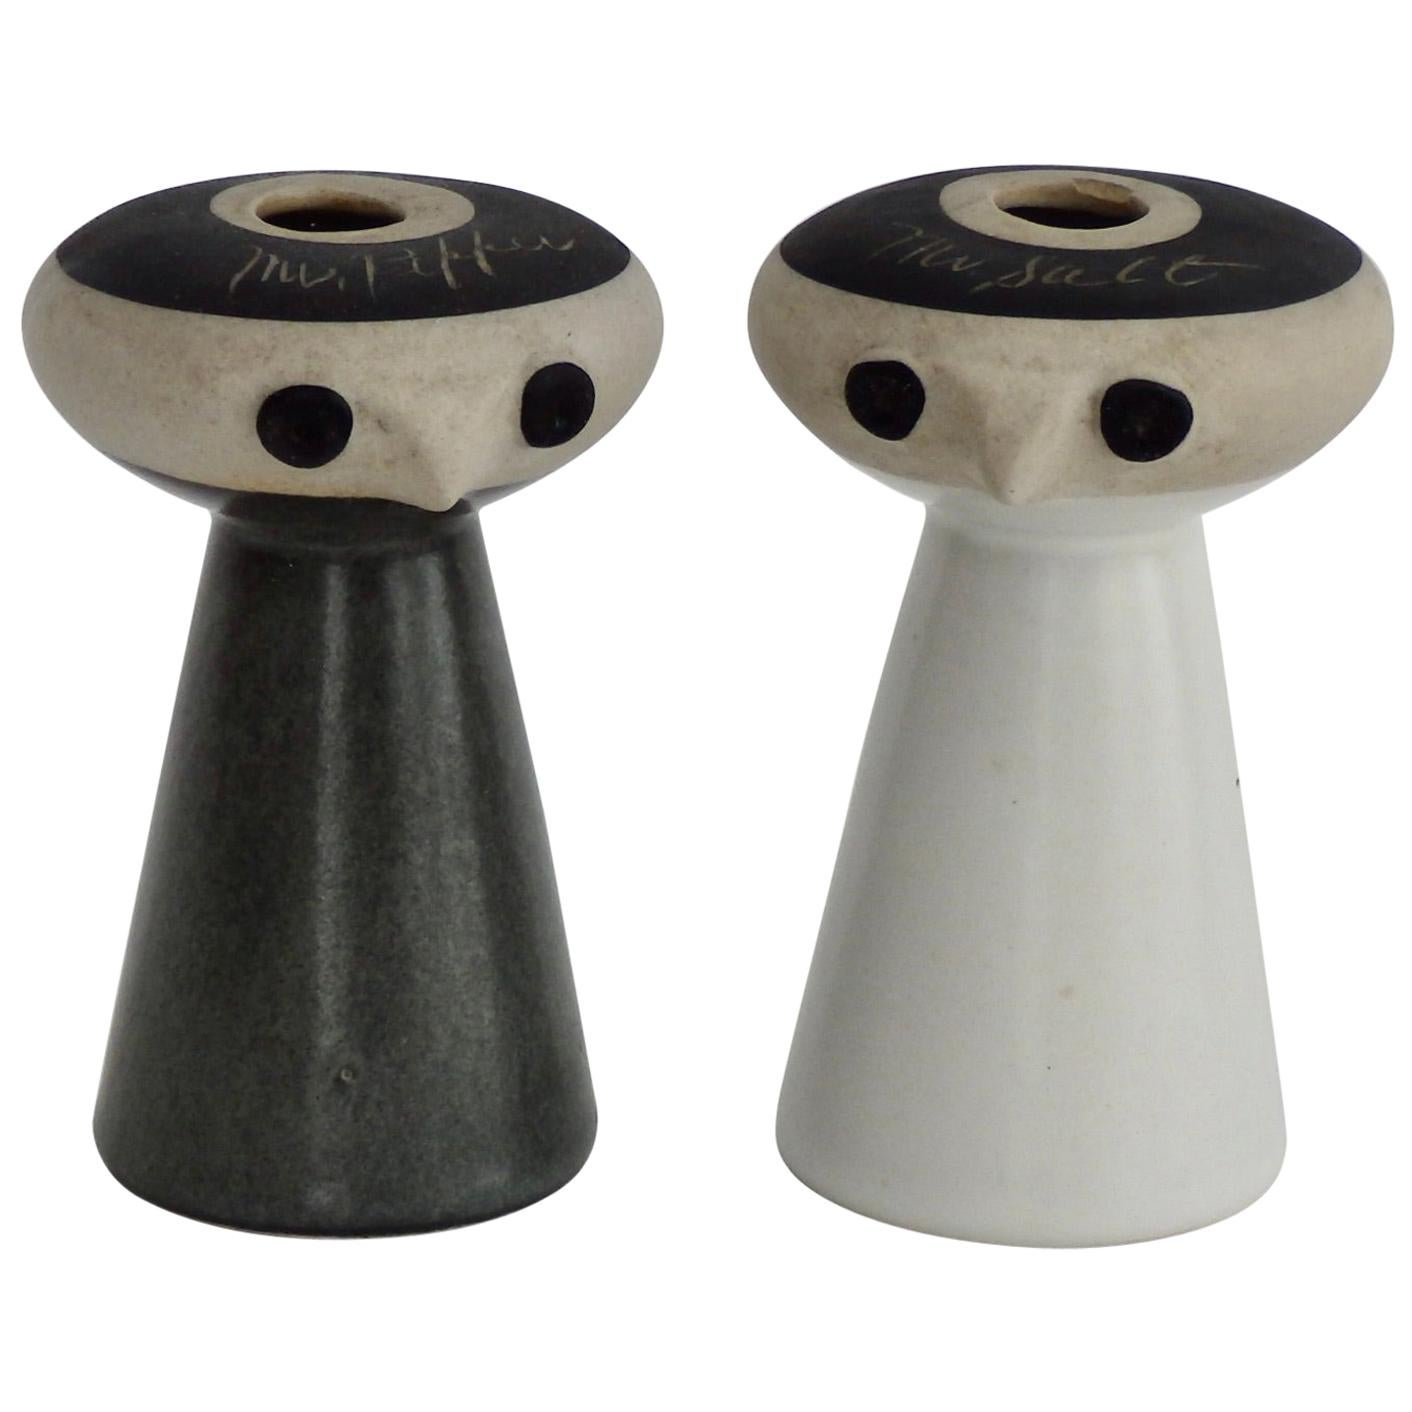 Mr Salt and Mrs Pepper Shakers by David Gil for Bennington Pottery Vermont